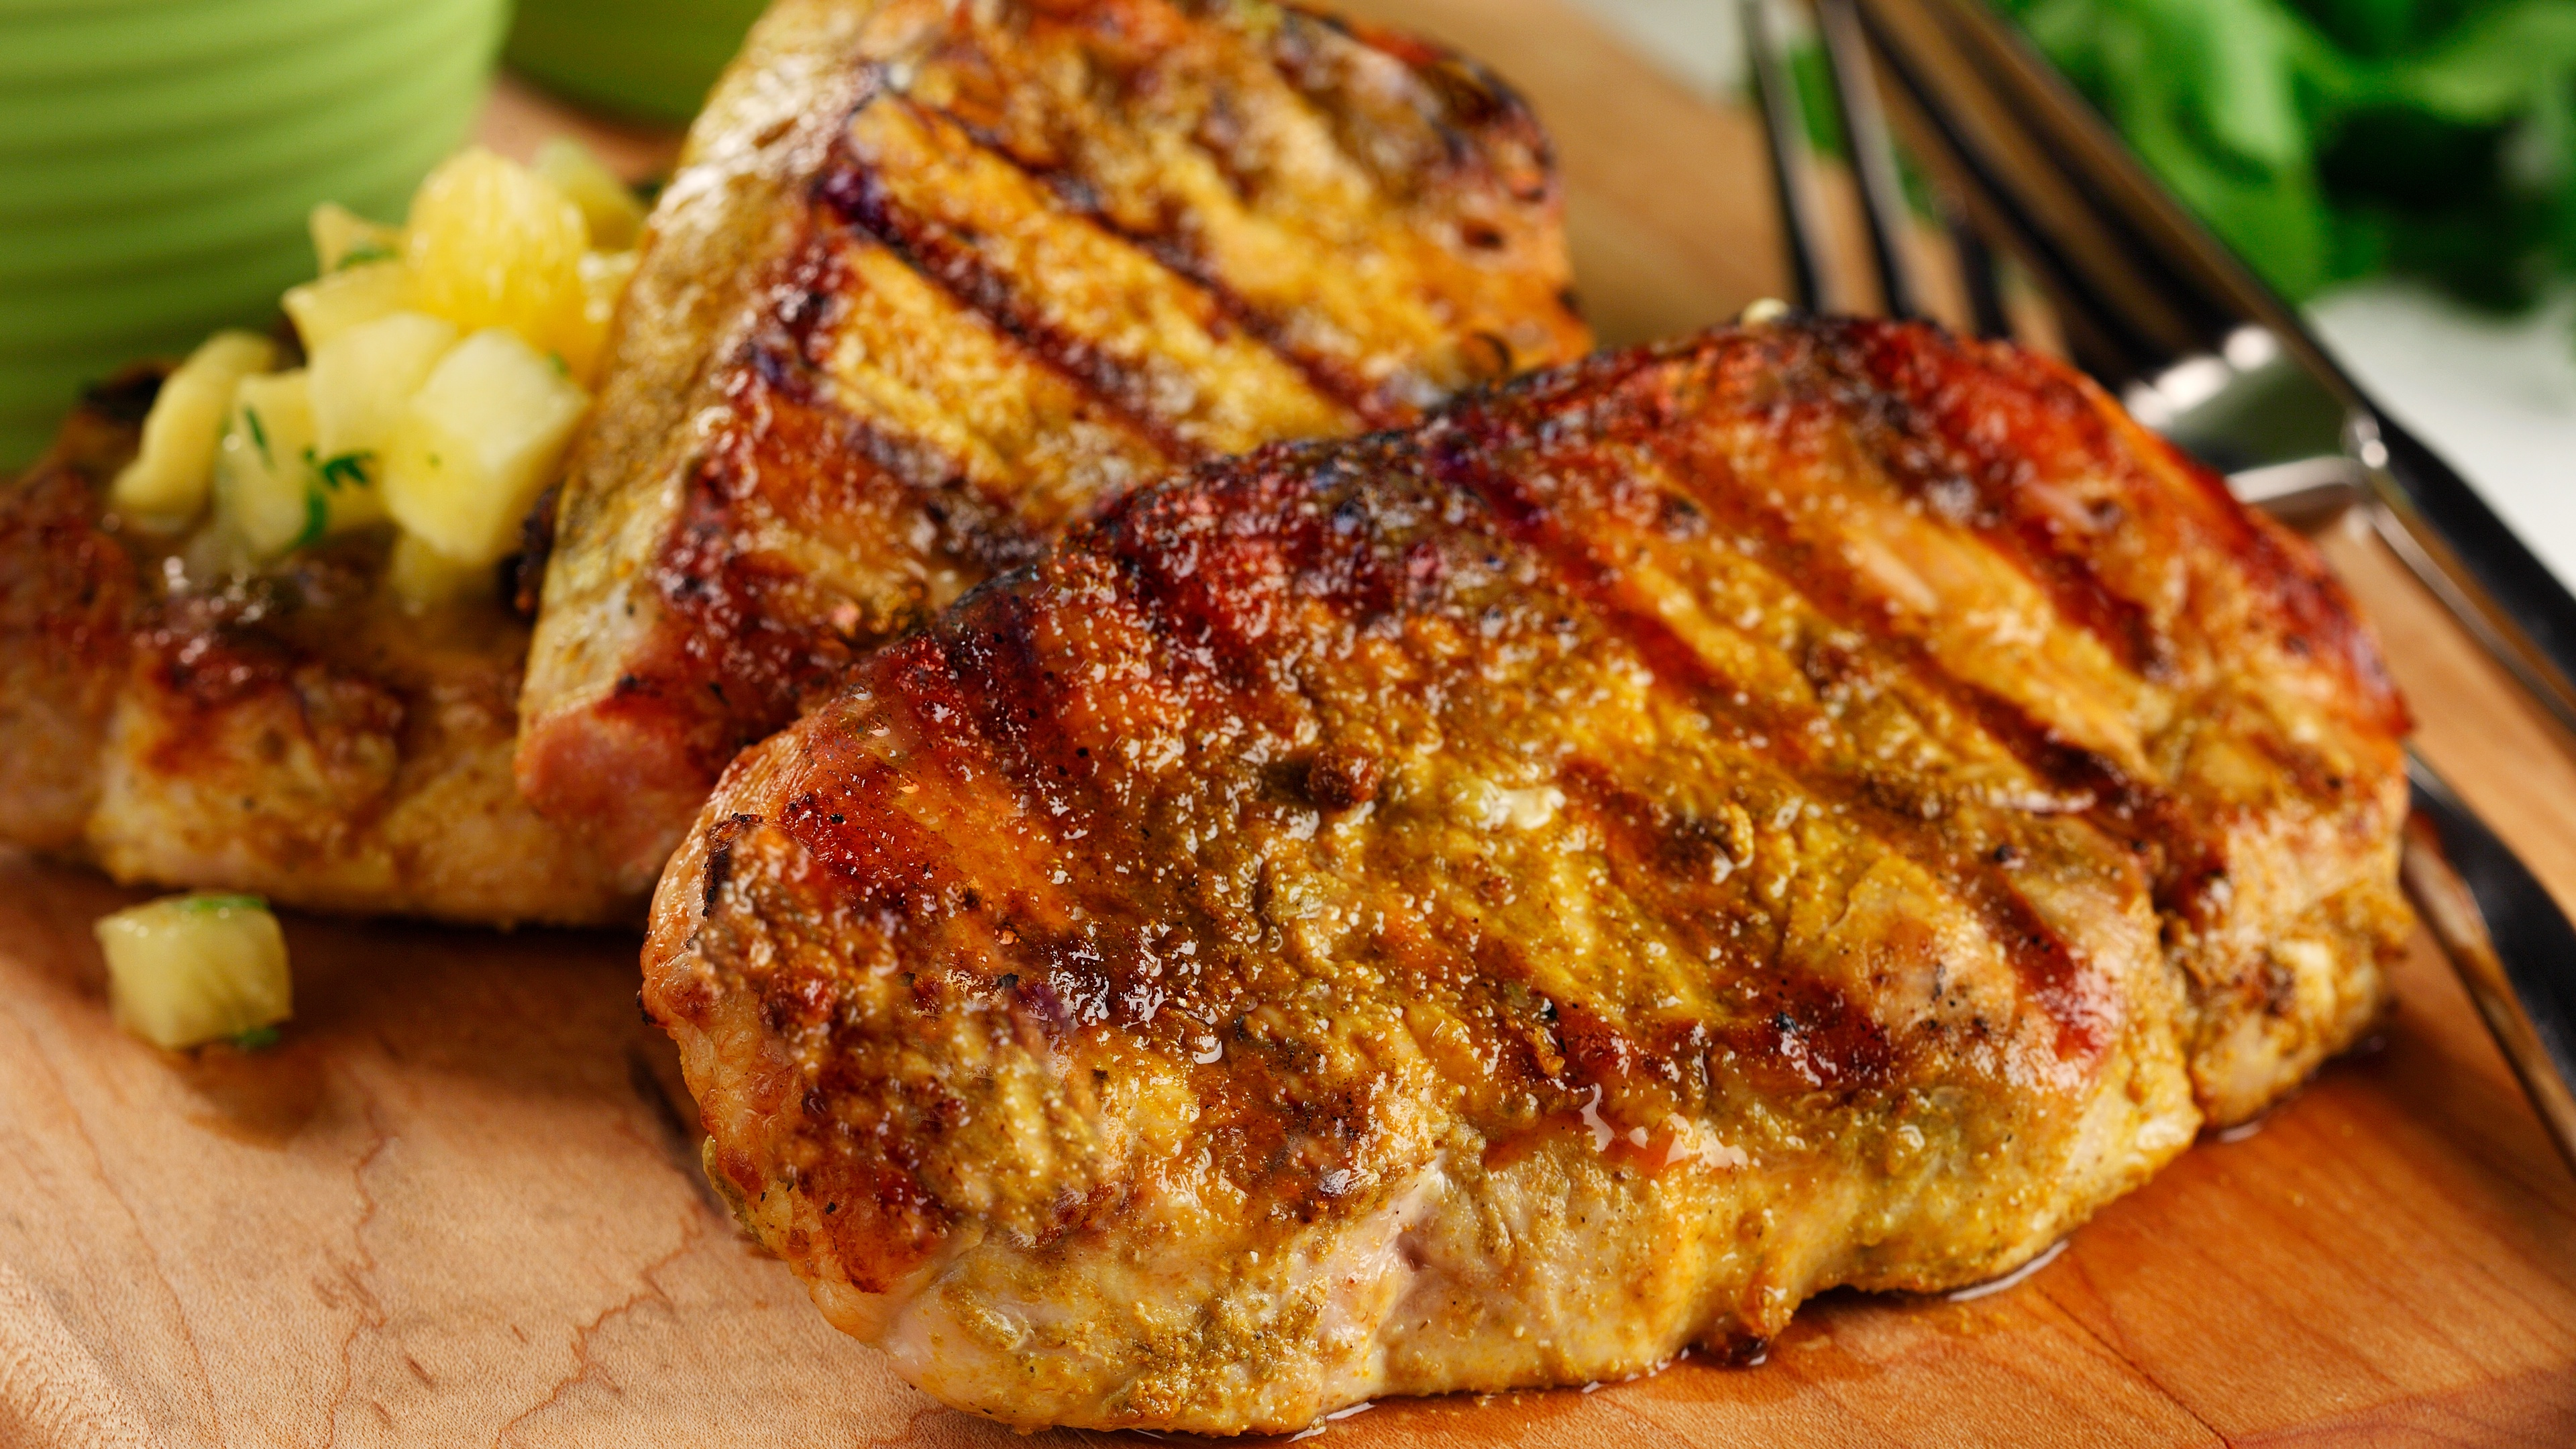 Close up of grilled pork chops on cutting board with sliced pineapple